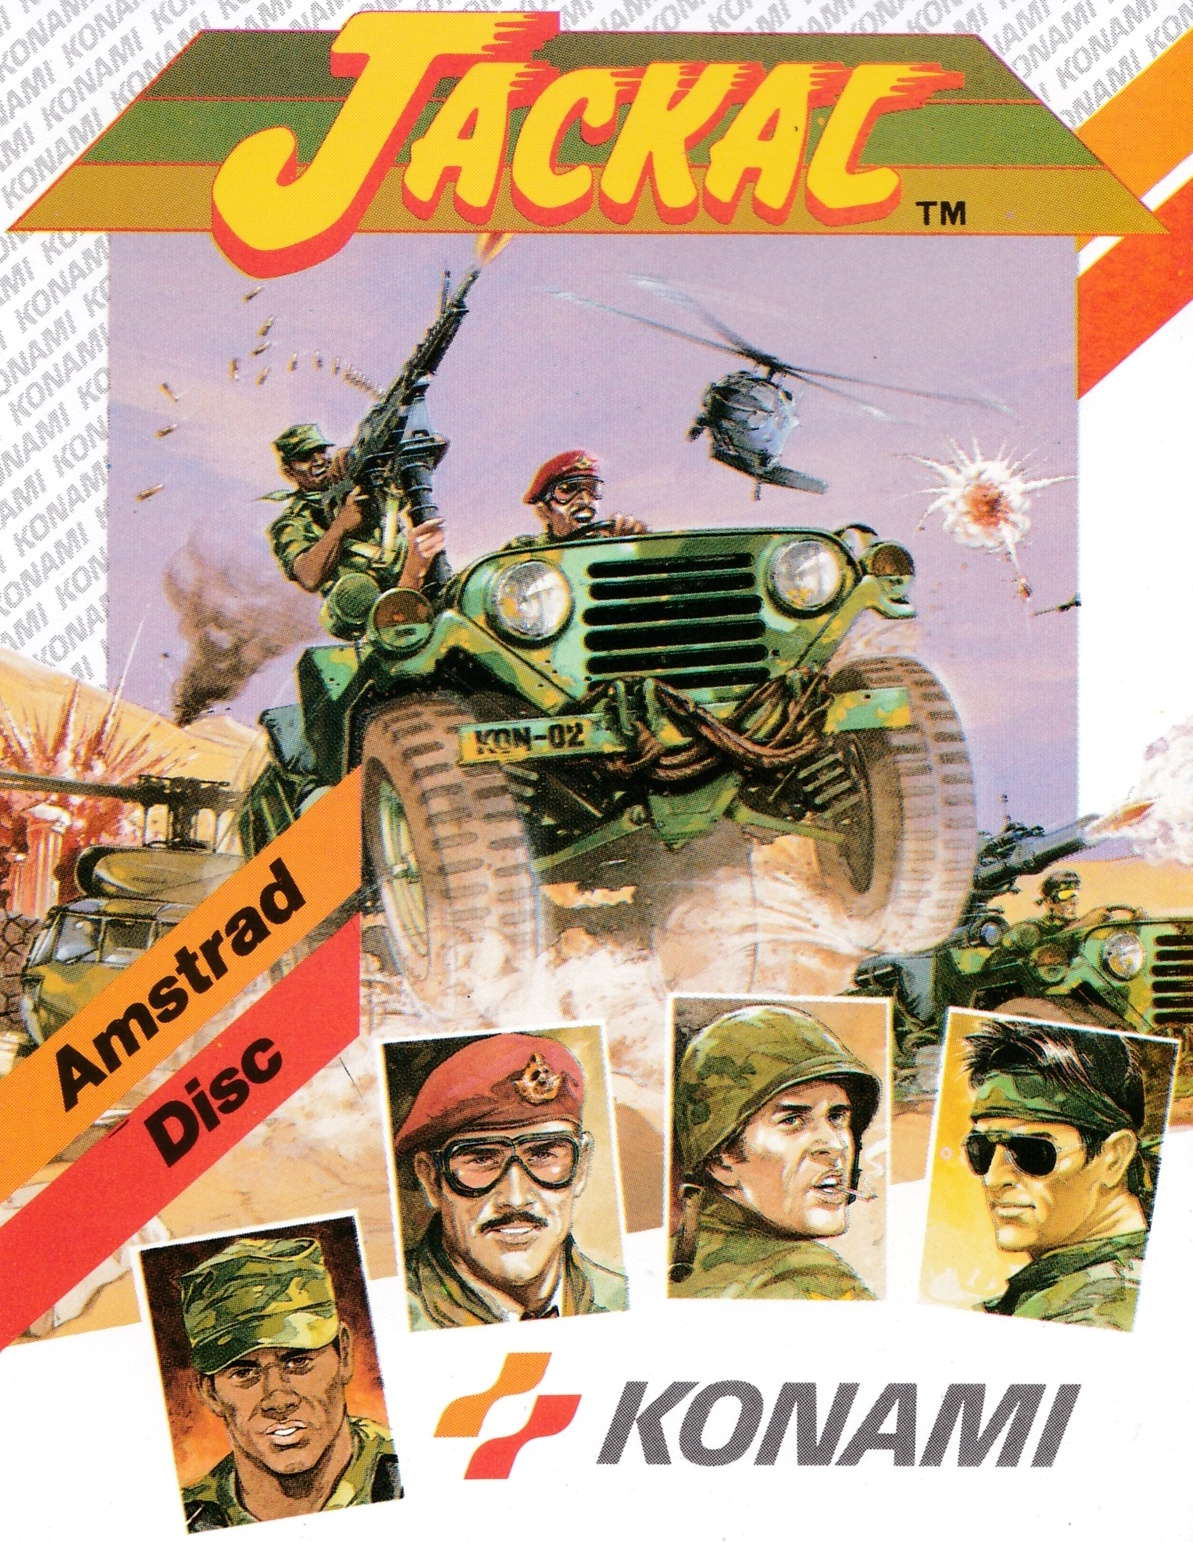 cover of the Amstrad CPC game Jackal  by GameBase CPC